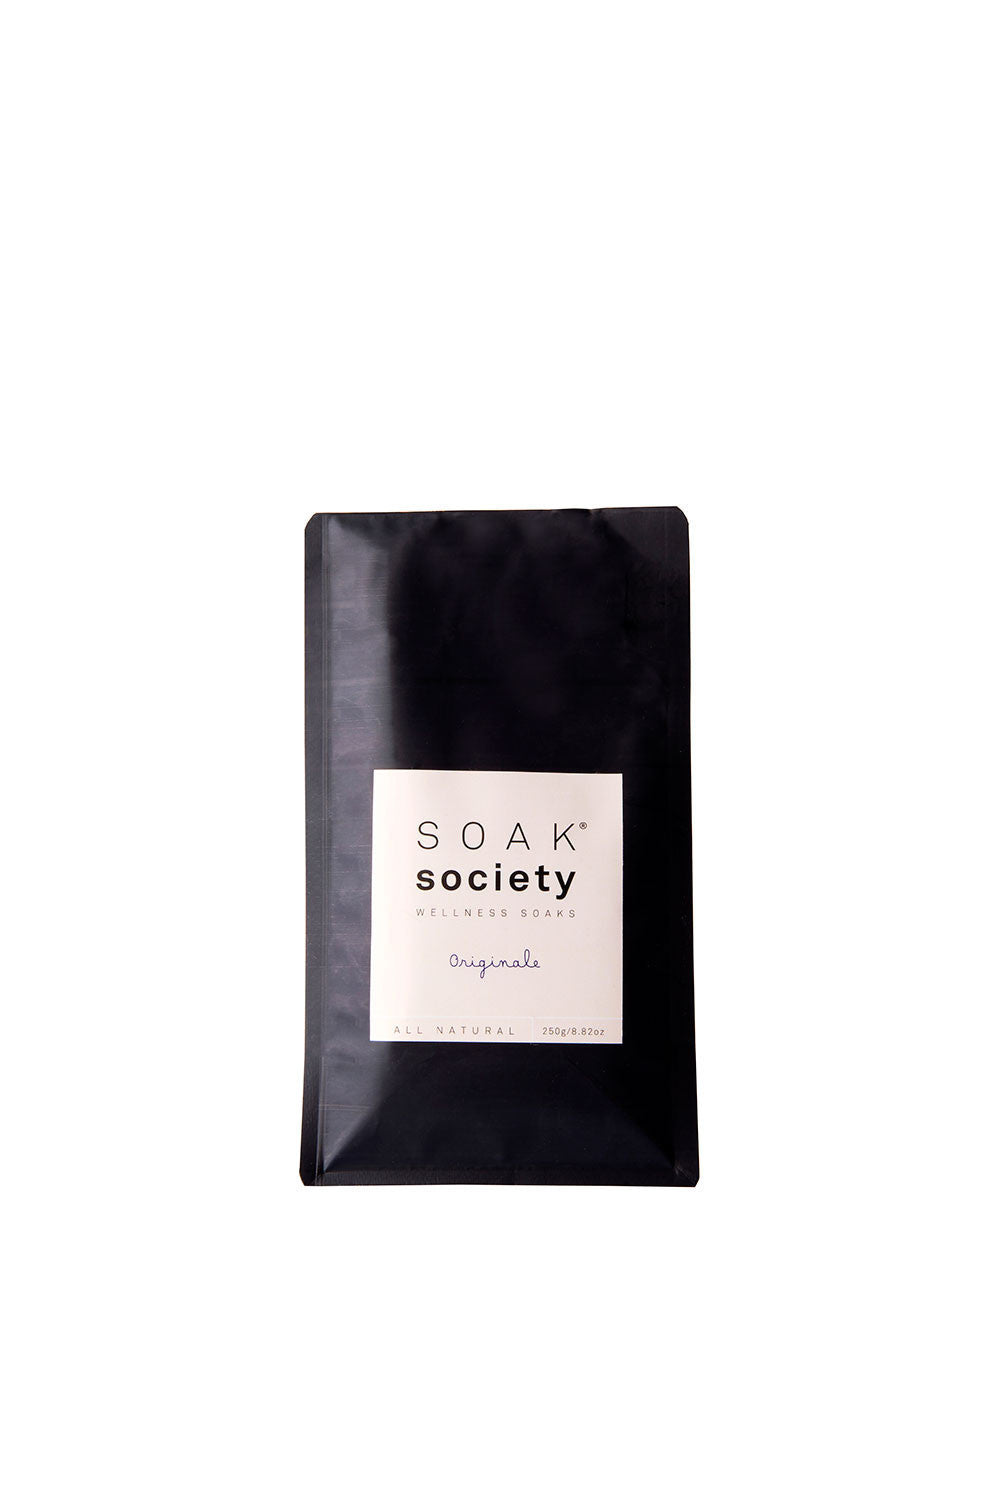 Soak Society Originale Wellness Soak